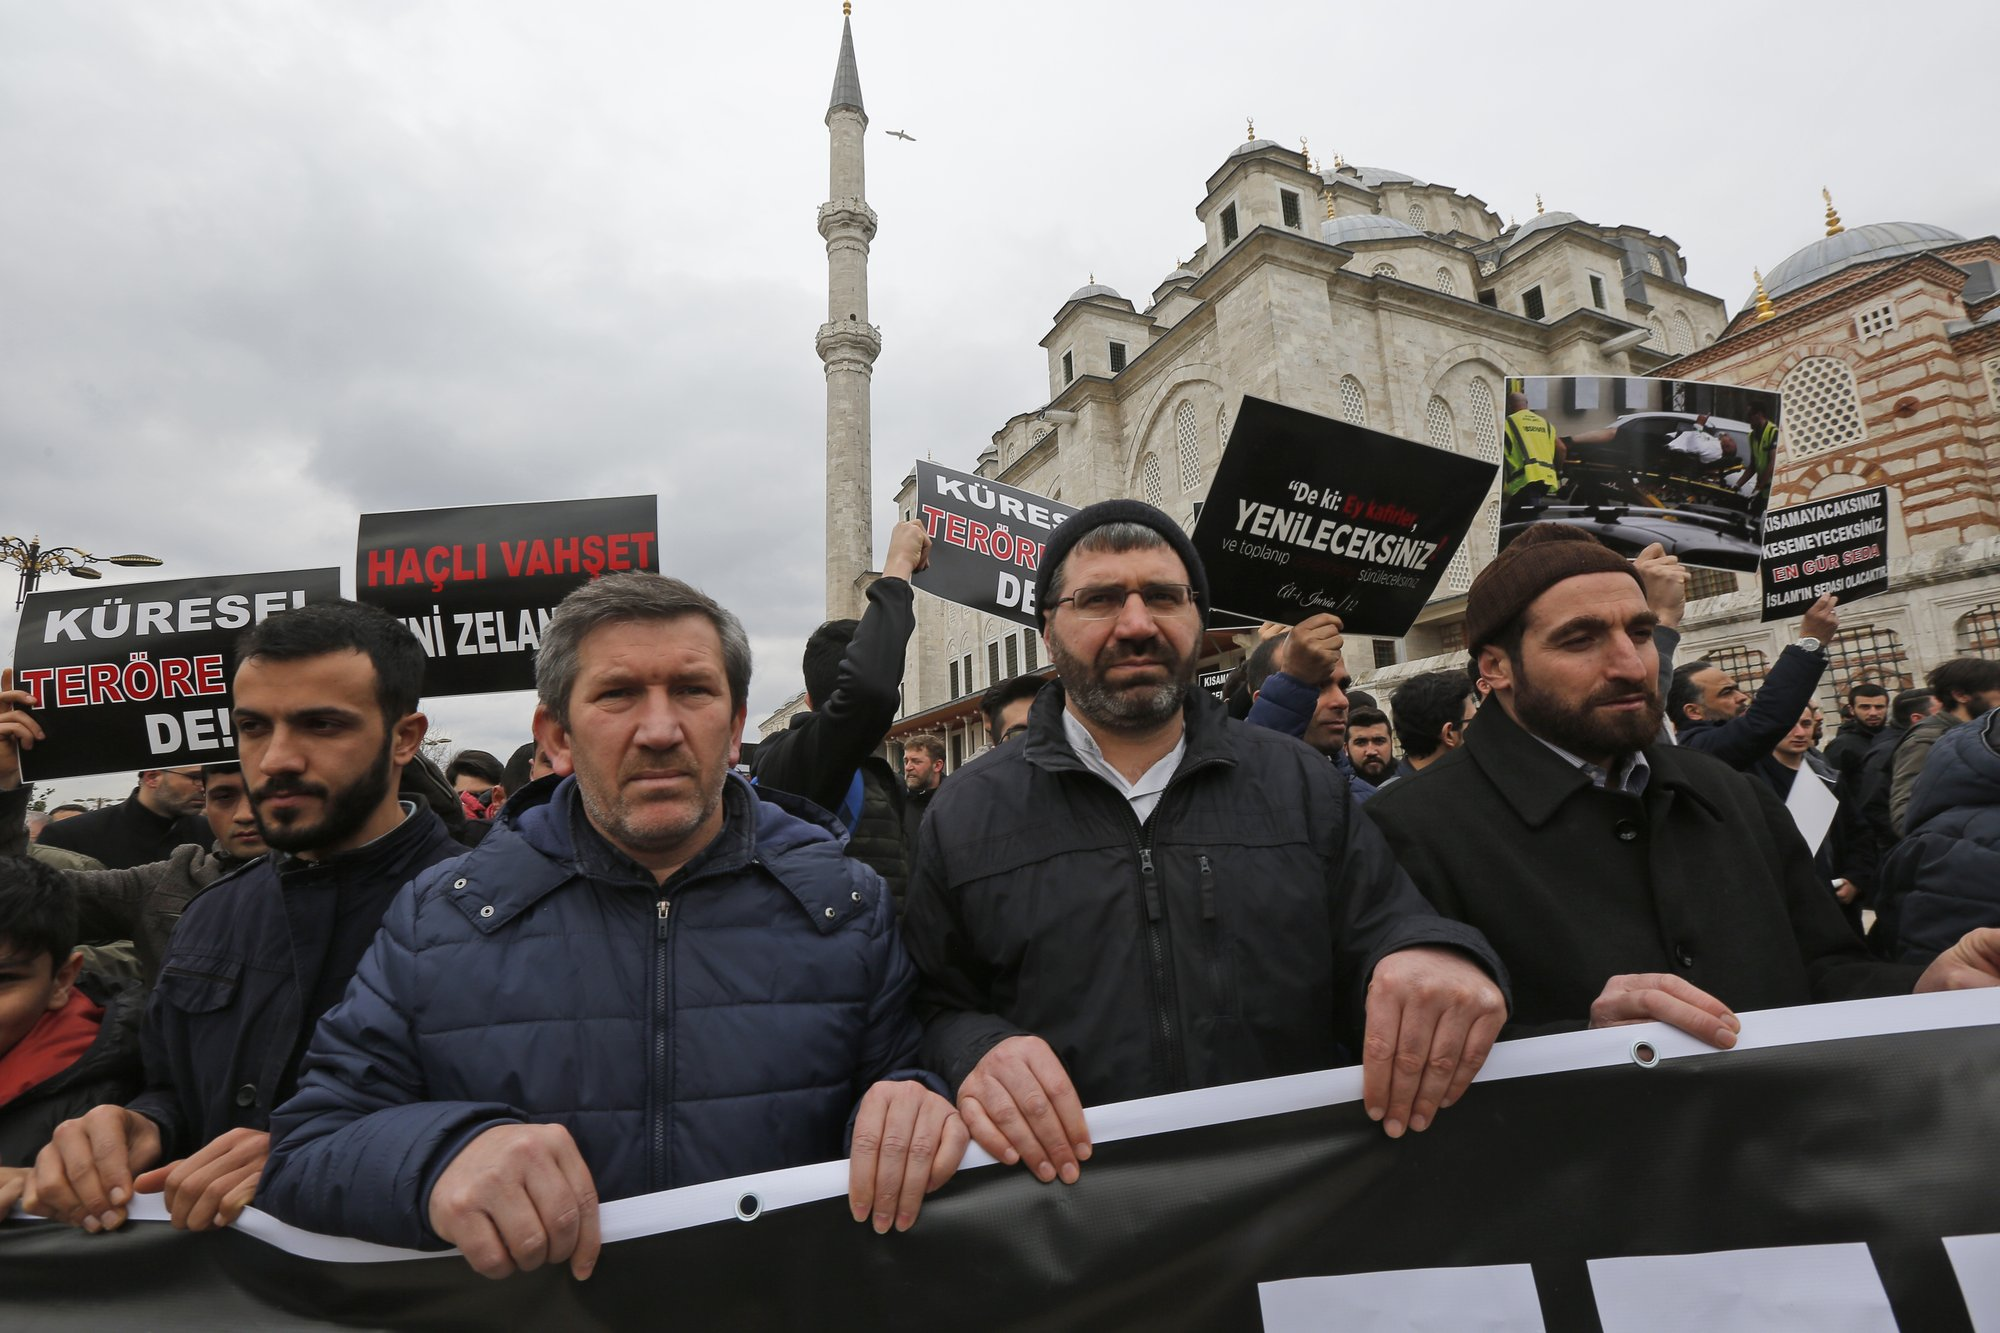 Mosque attacks spark outrage, fuel concern over Islamophobia